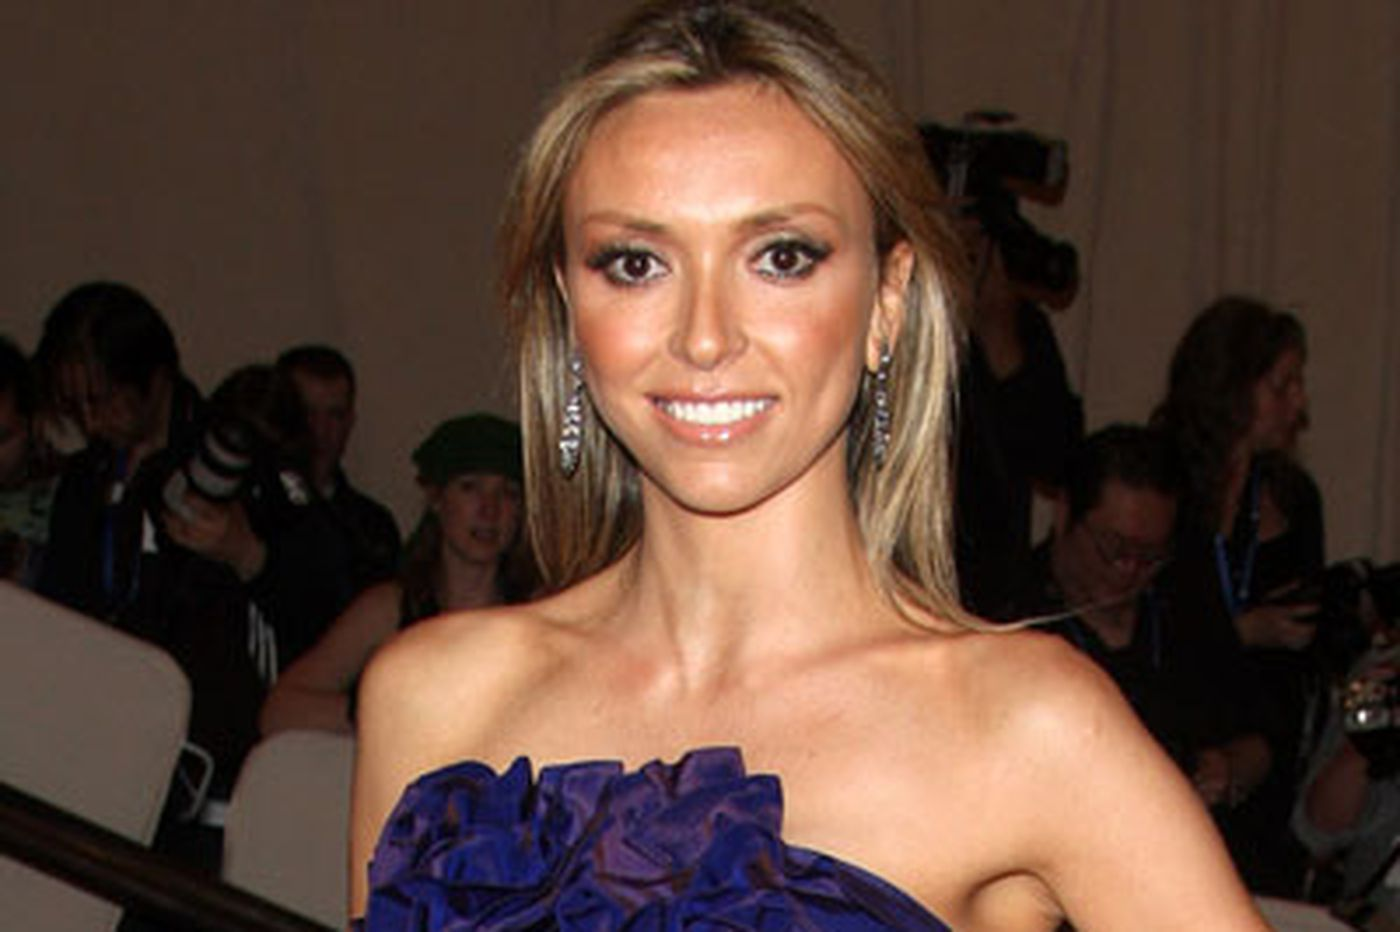 Tattle: E! News' Rancic opts for double mastectomy